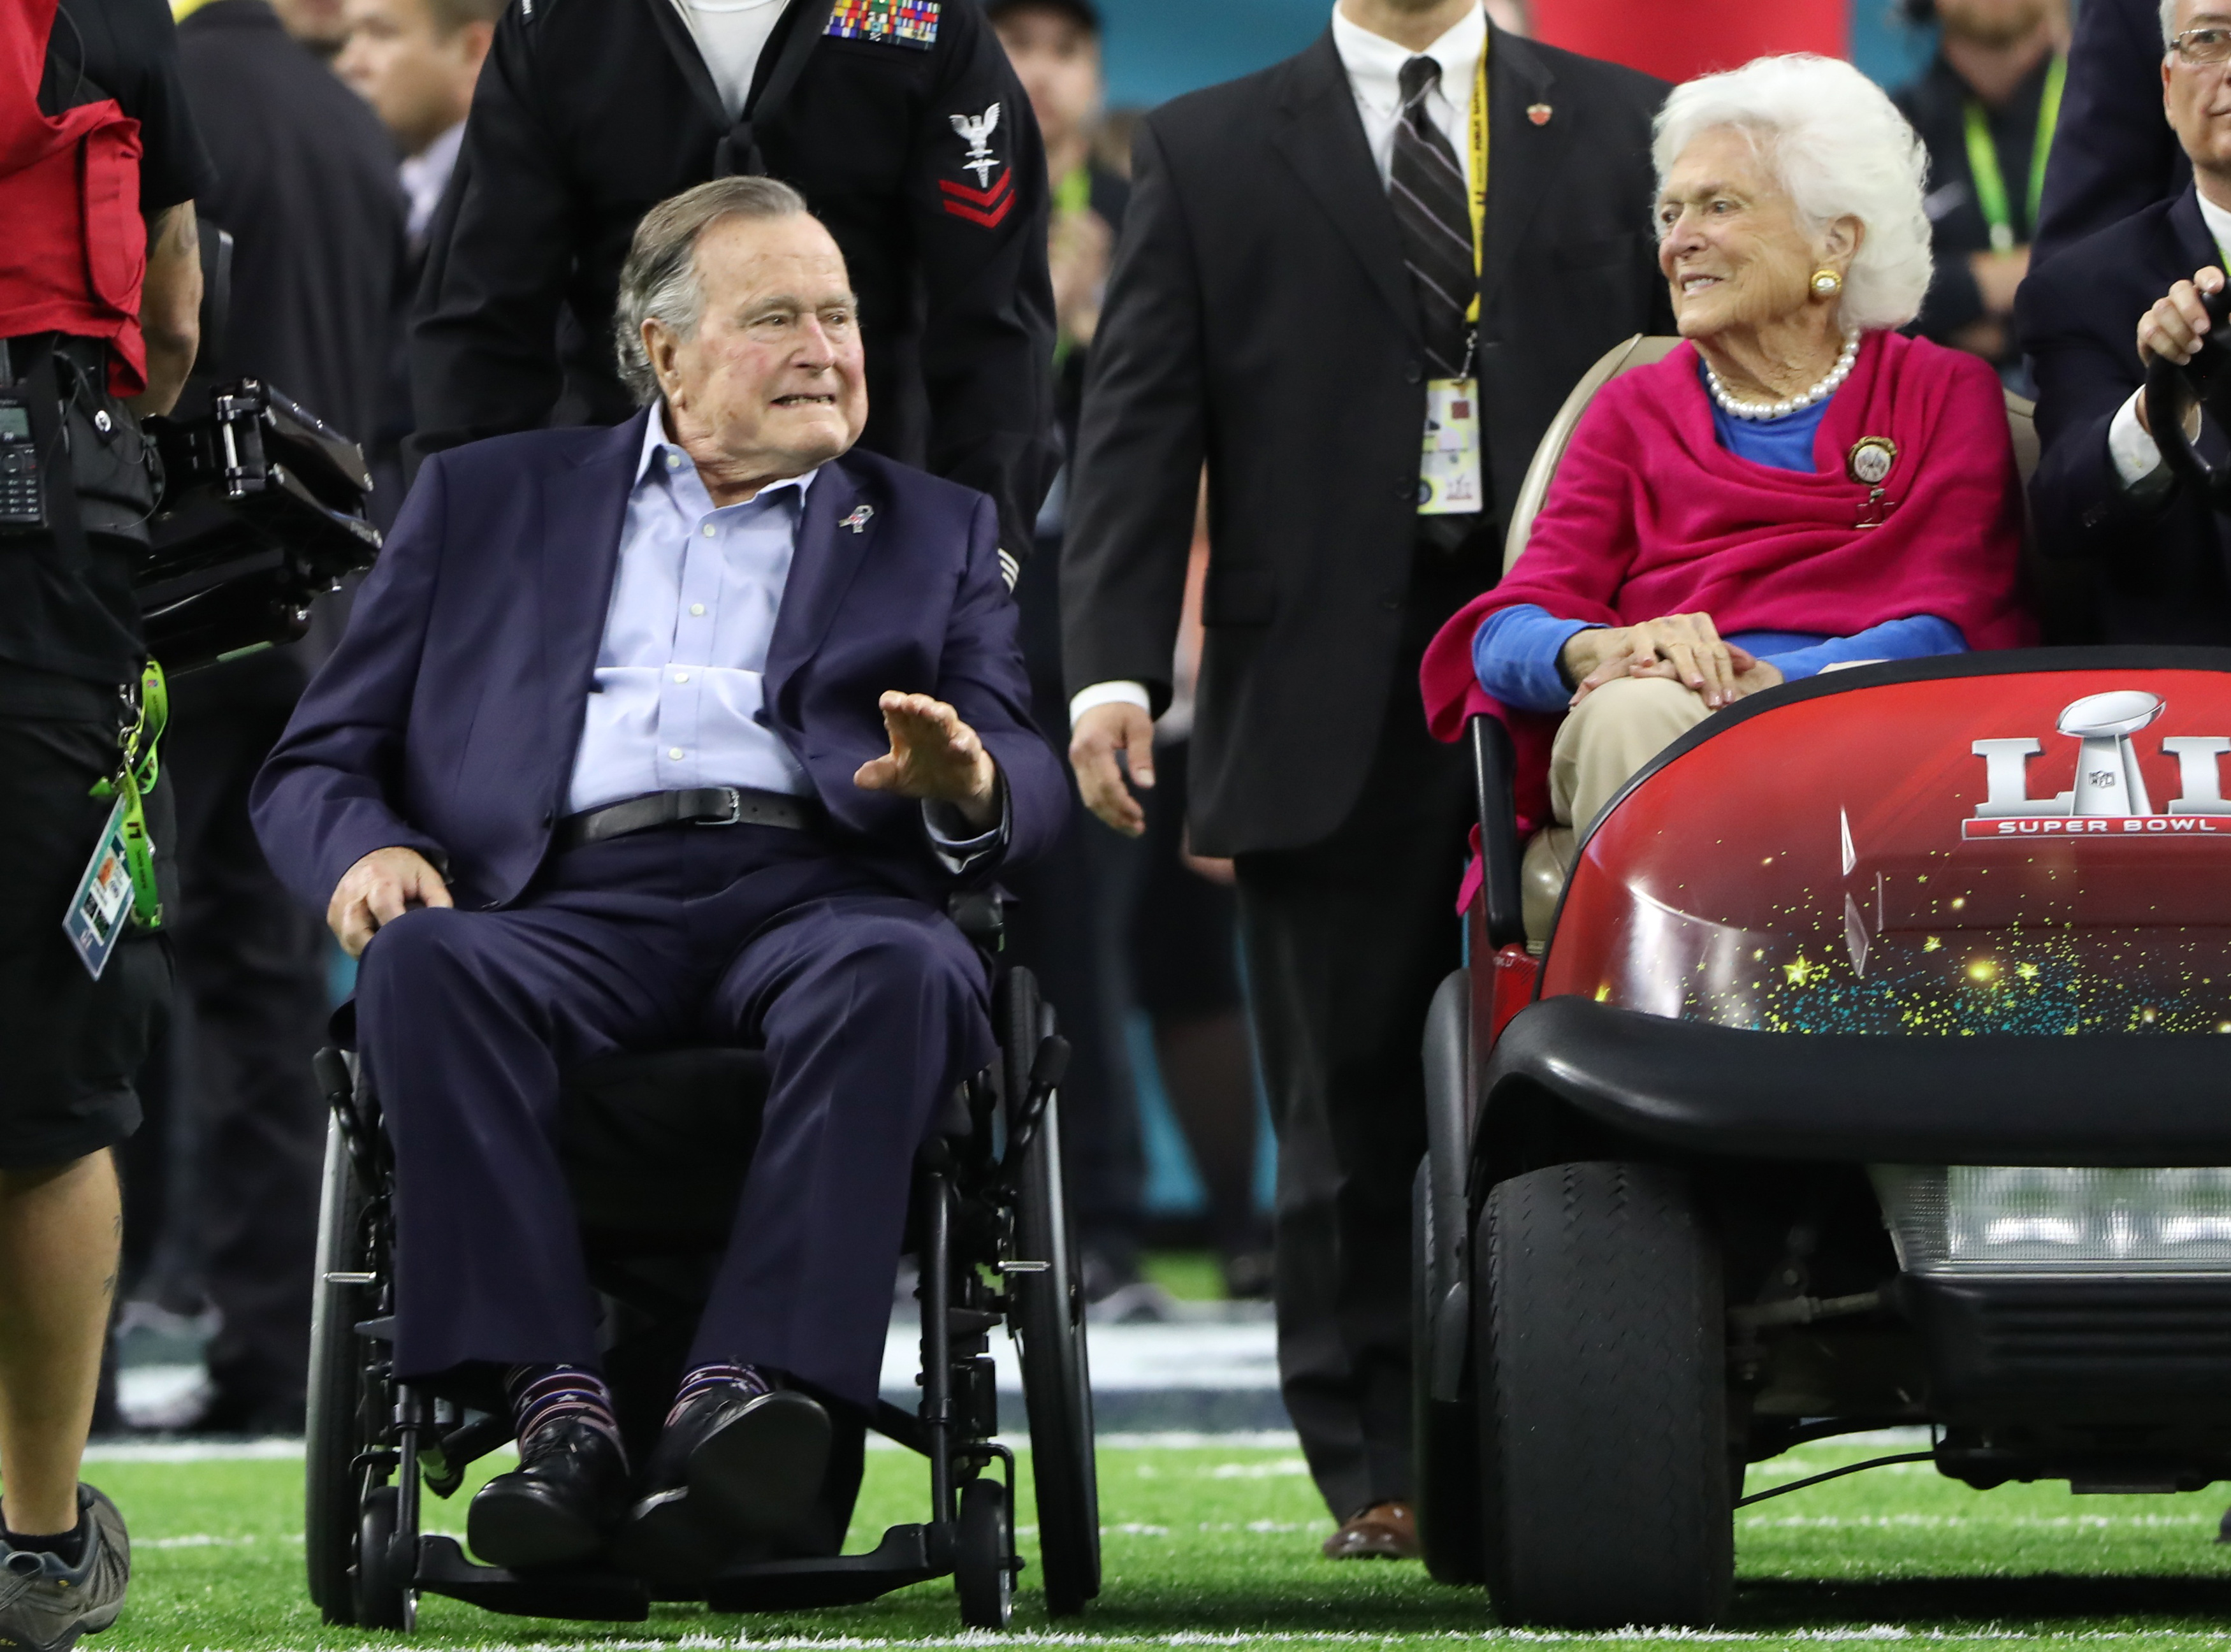 Former U.S. President George H.W. Bush and former first lady Barbara Bush arrive on the field to do the coin toss ahead of the start of Super Bowl LI between the New England Patriots and the Atlanta Falcons in Houston, Texas, U.S., on February 5, 2017. REUTERS/Adrees Latif - HT1ED251U6J00